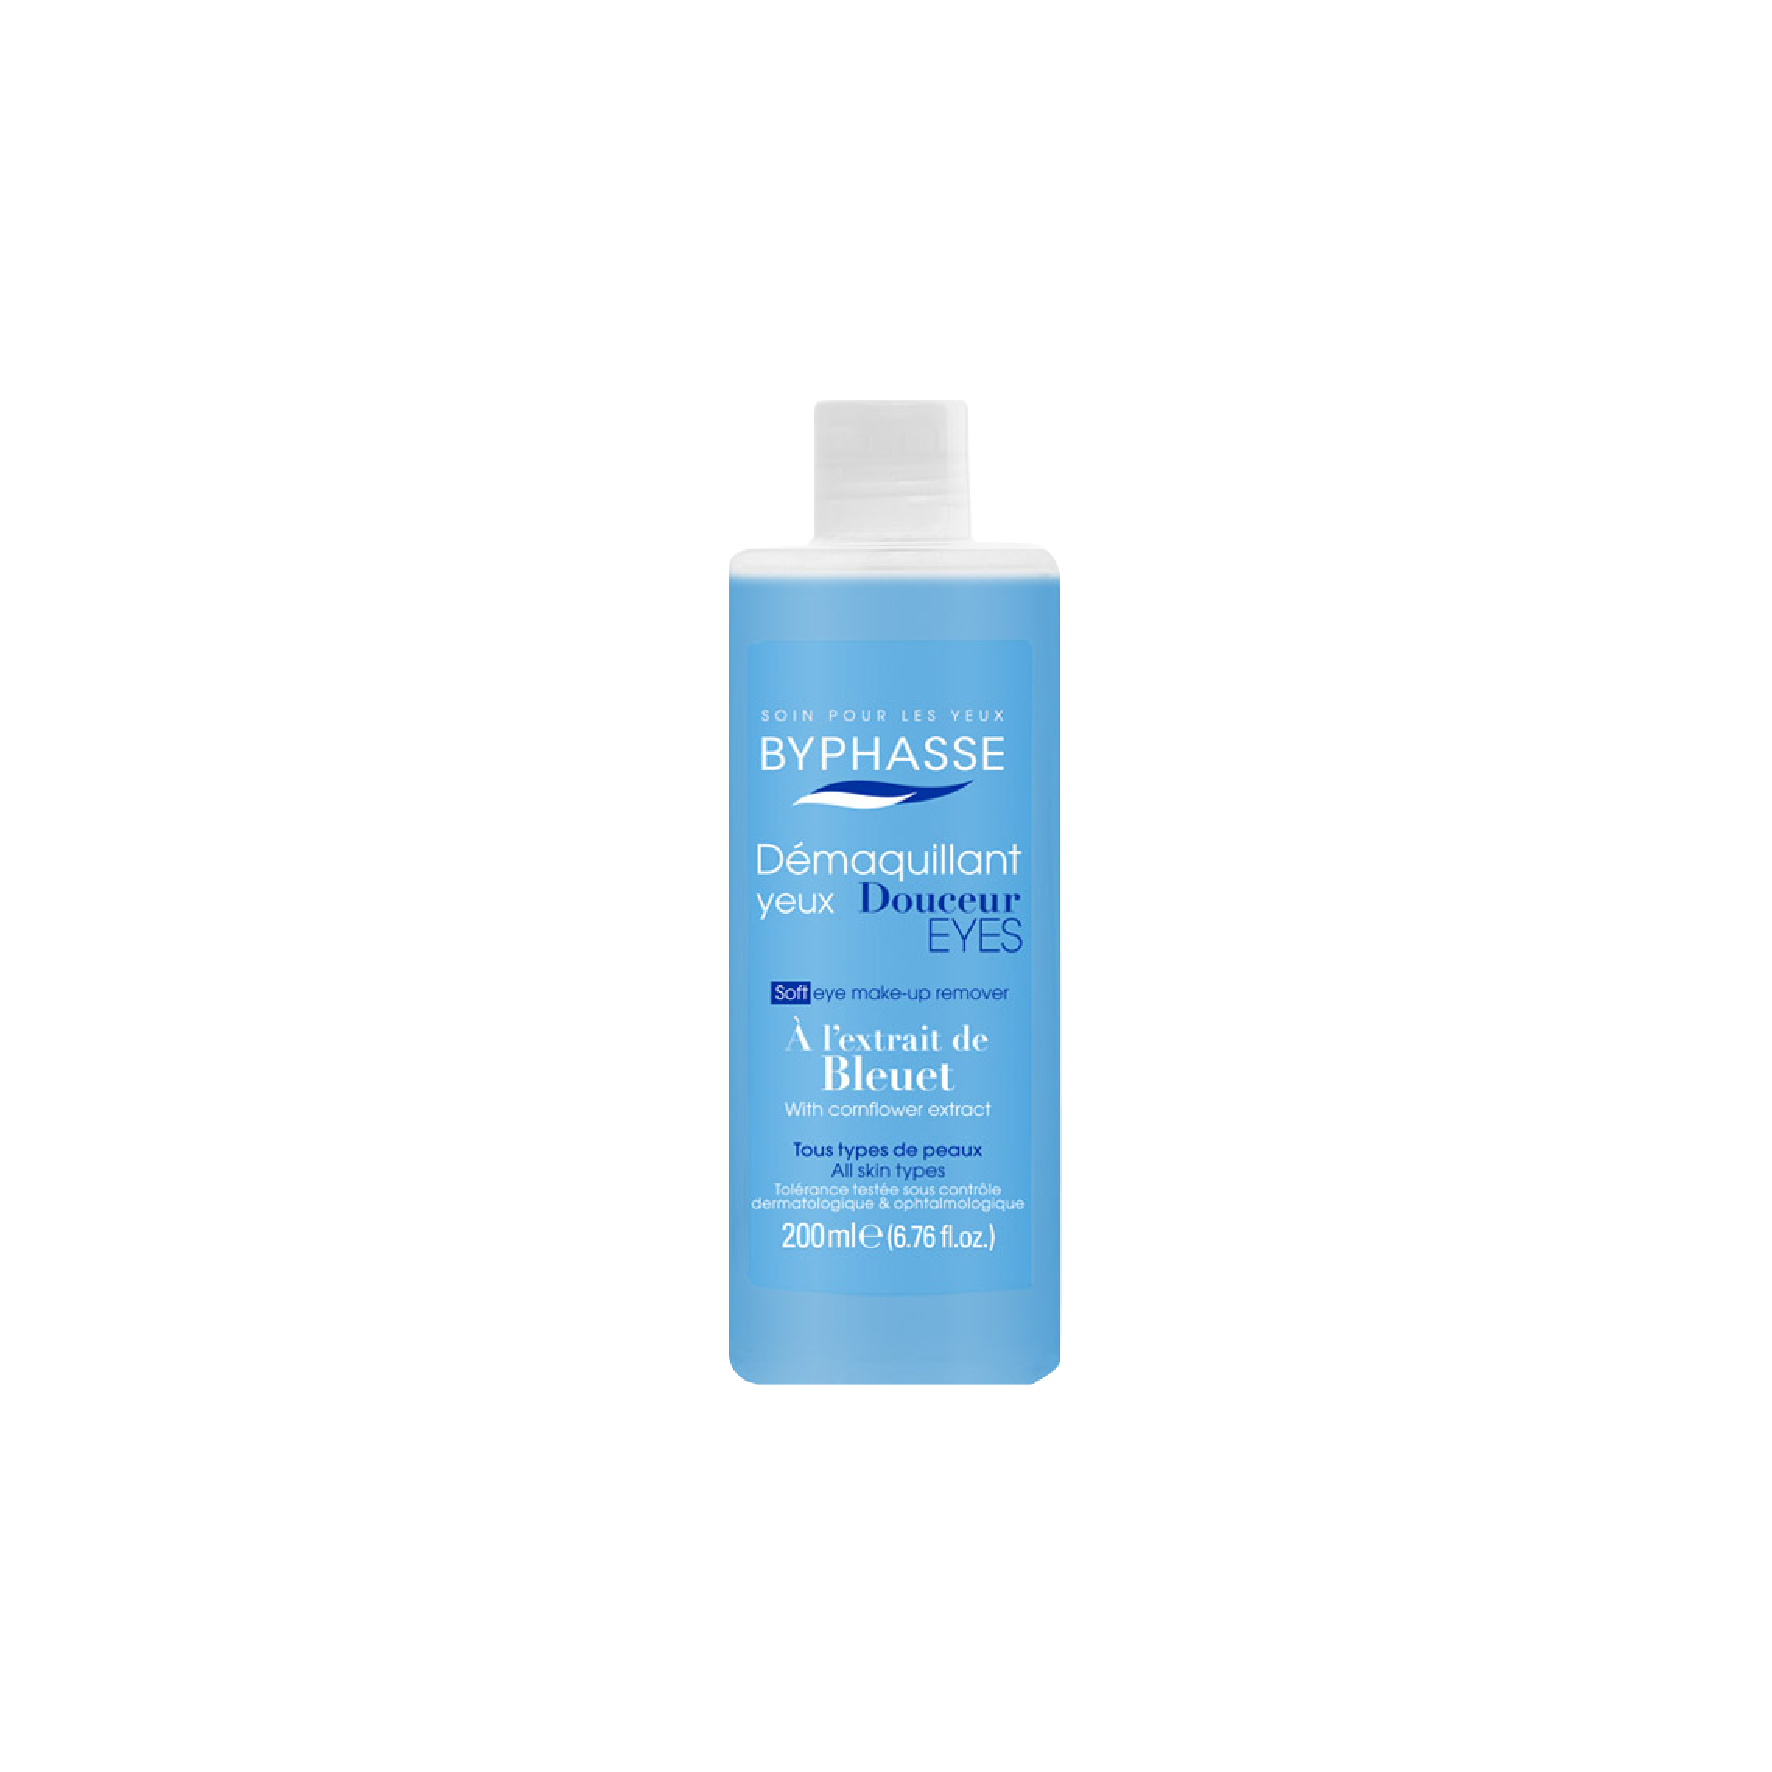 Byphasse Soft Eye Make Up Remover Cornflower Extract 200Ml thumbnail